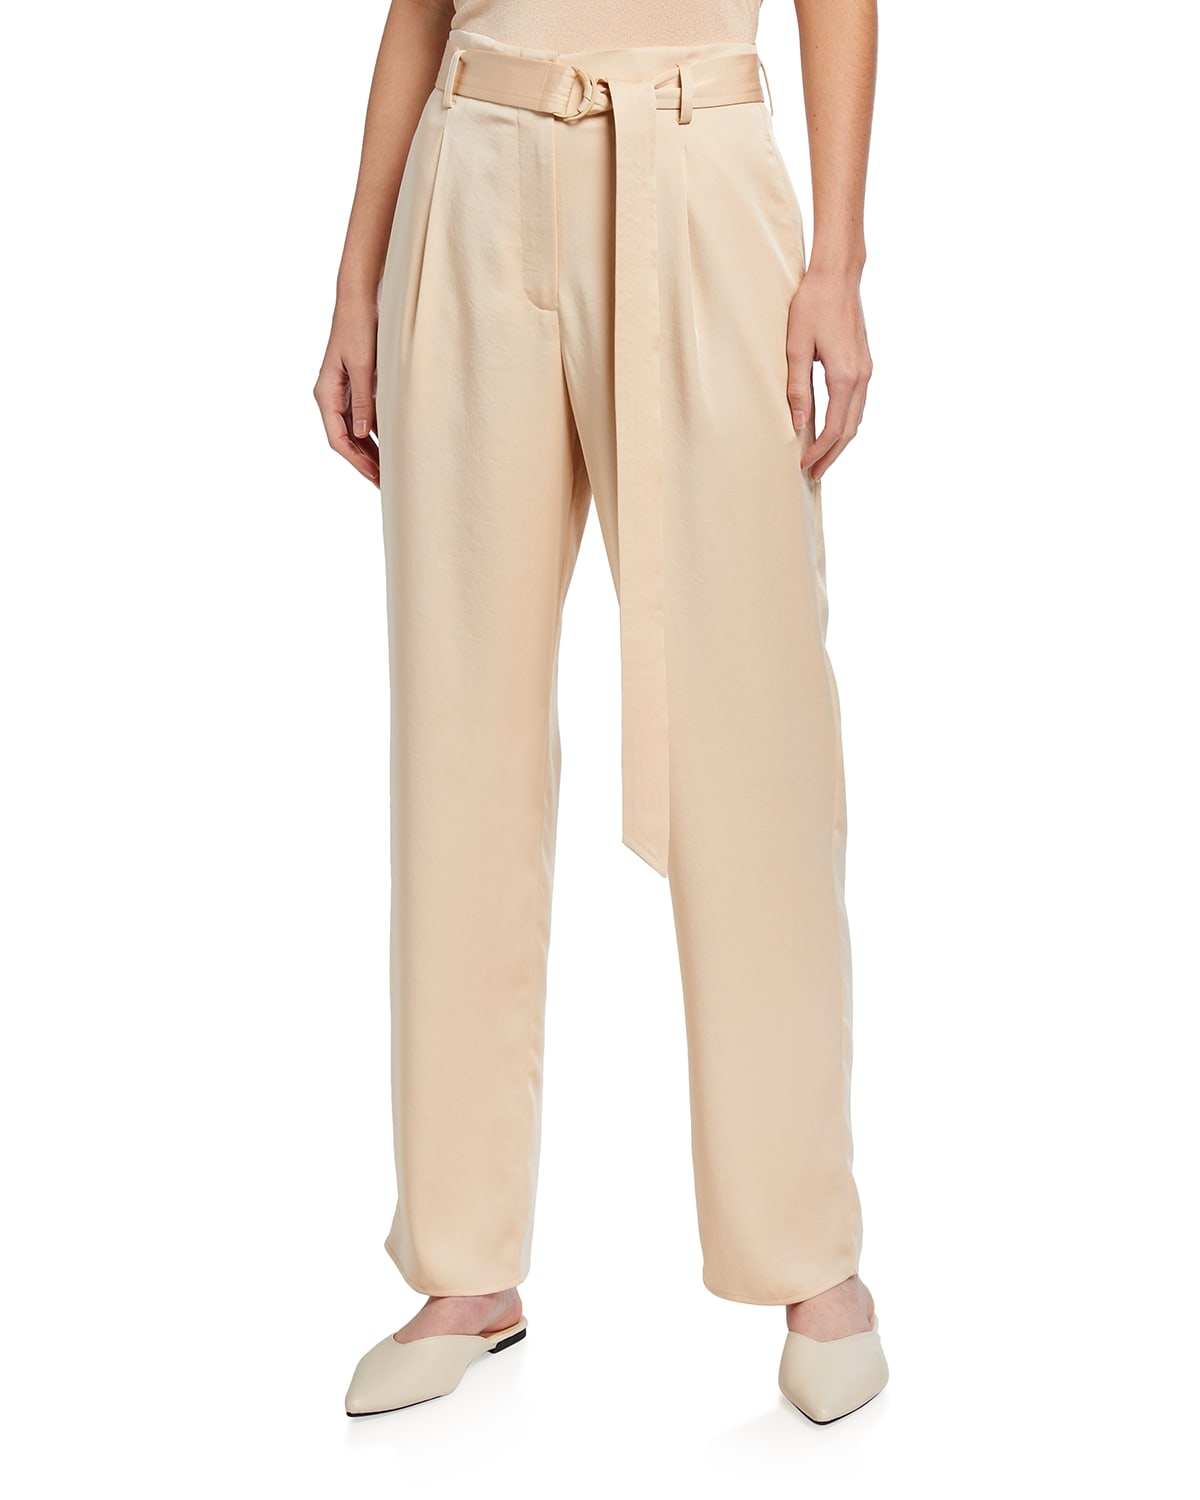 Satin Belted Trousers